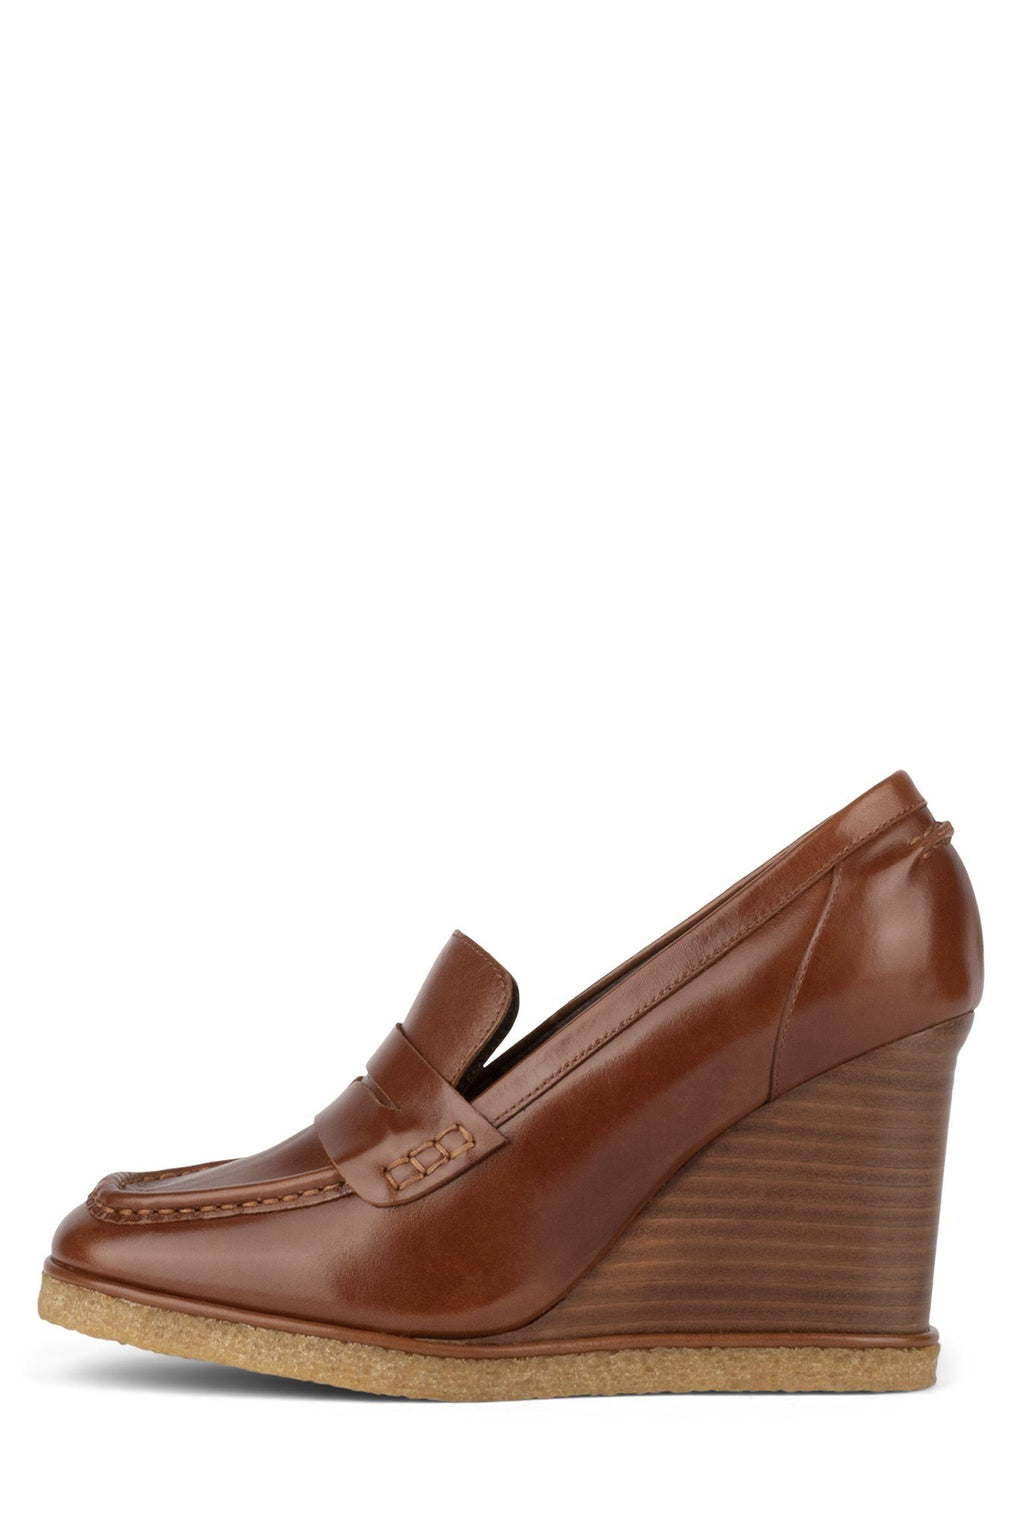 AUBERGE Loafer YYH Tan 6